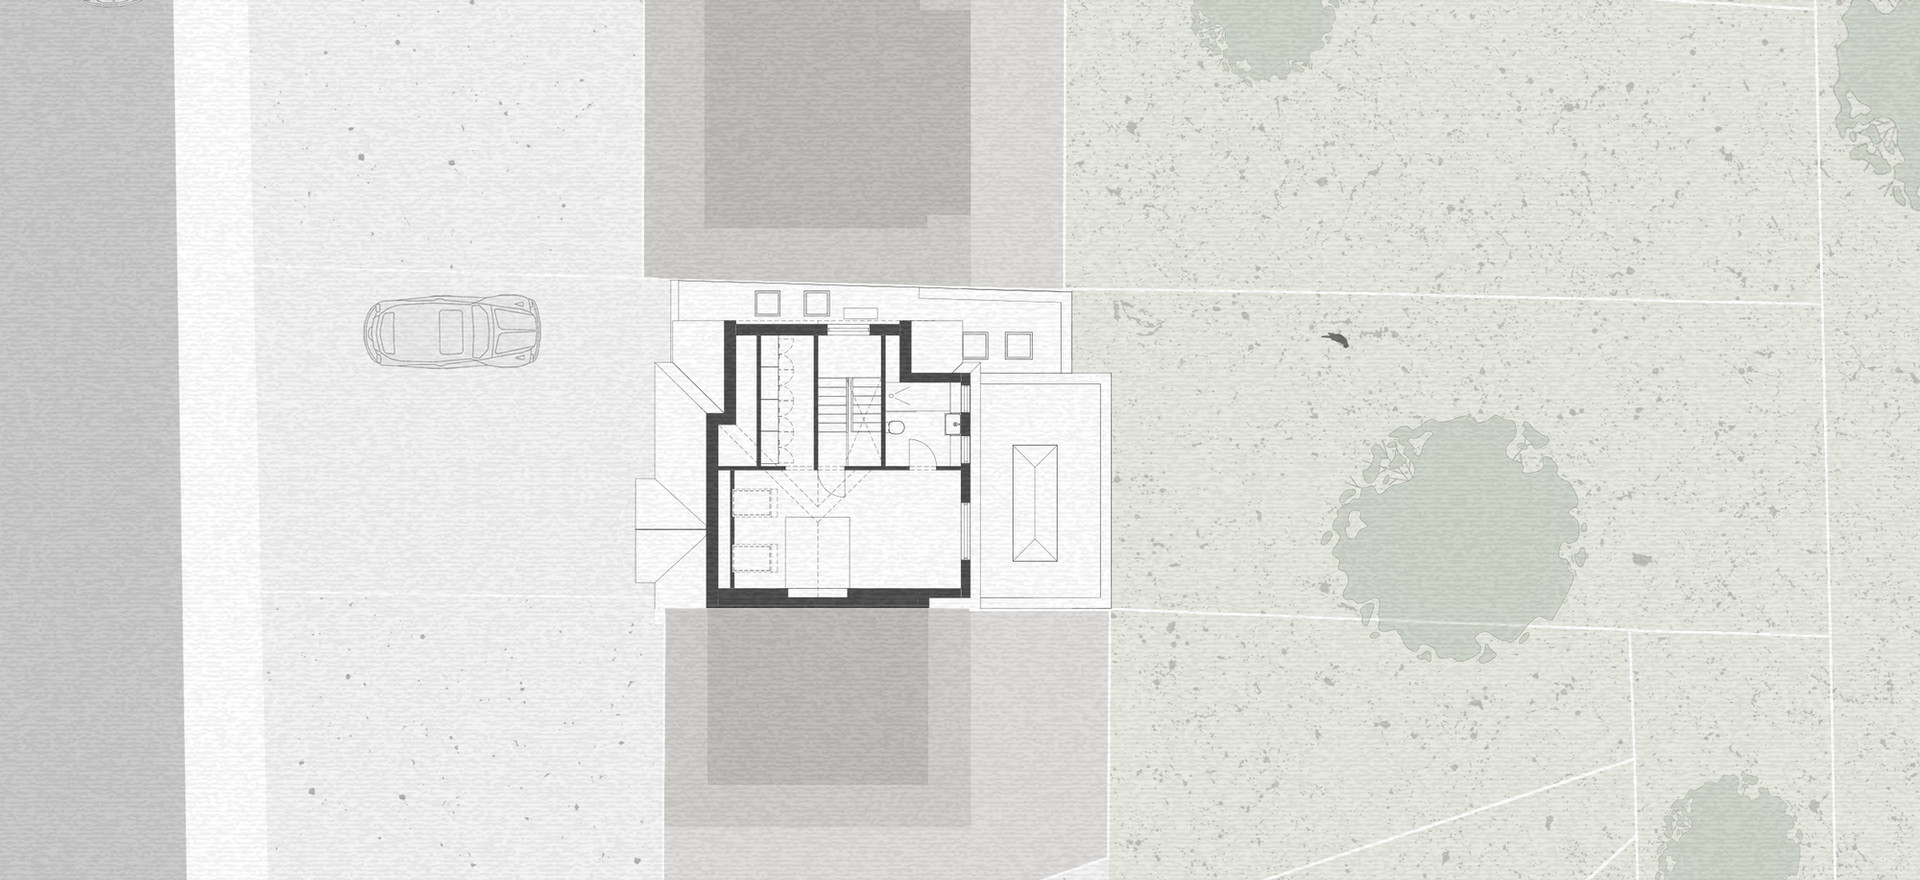 wr-ap_11PW_second floor plan.jpg